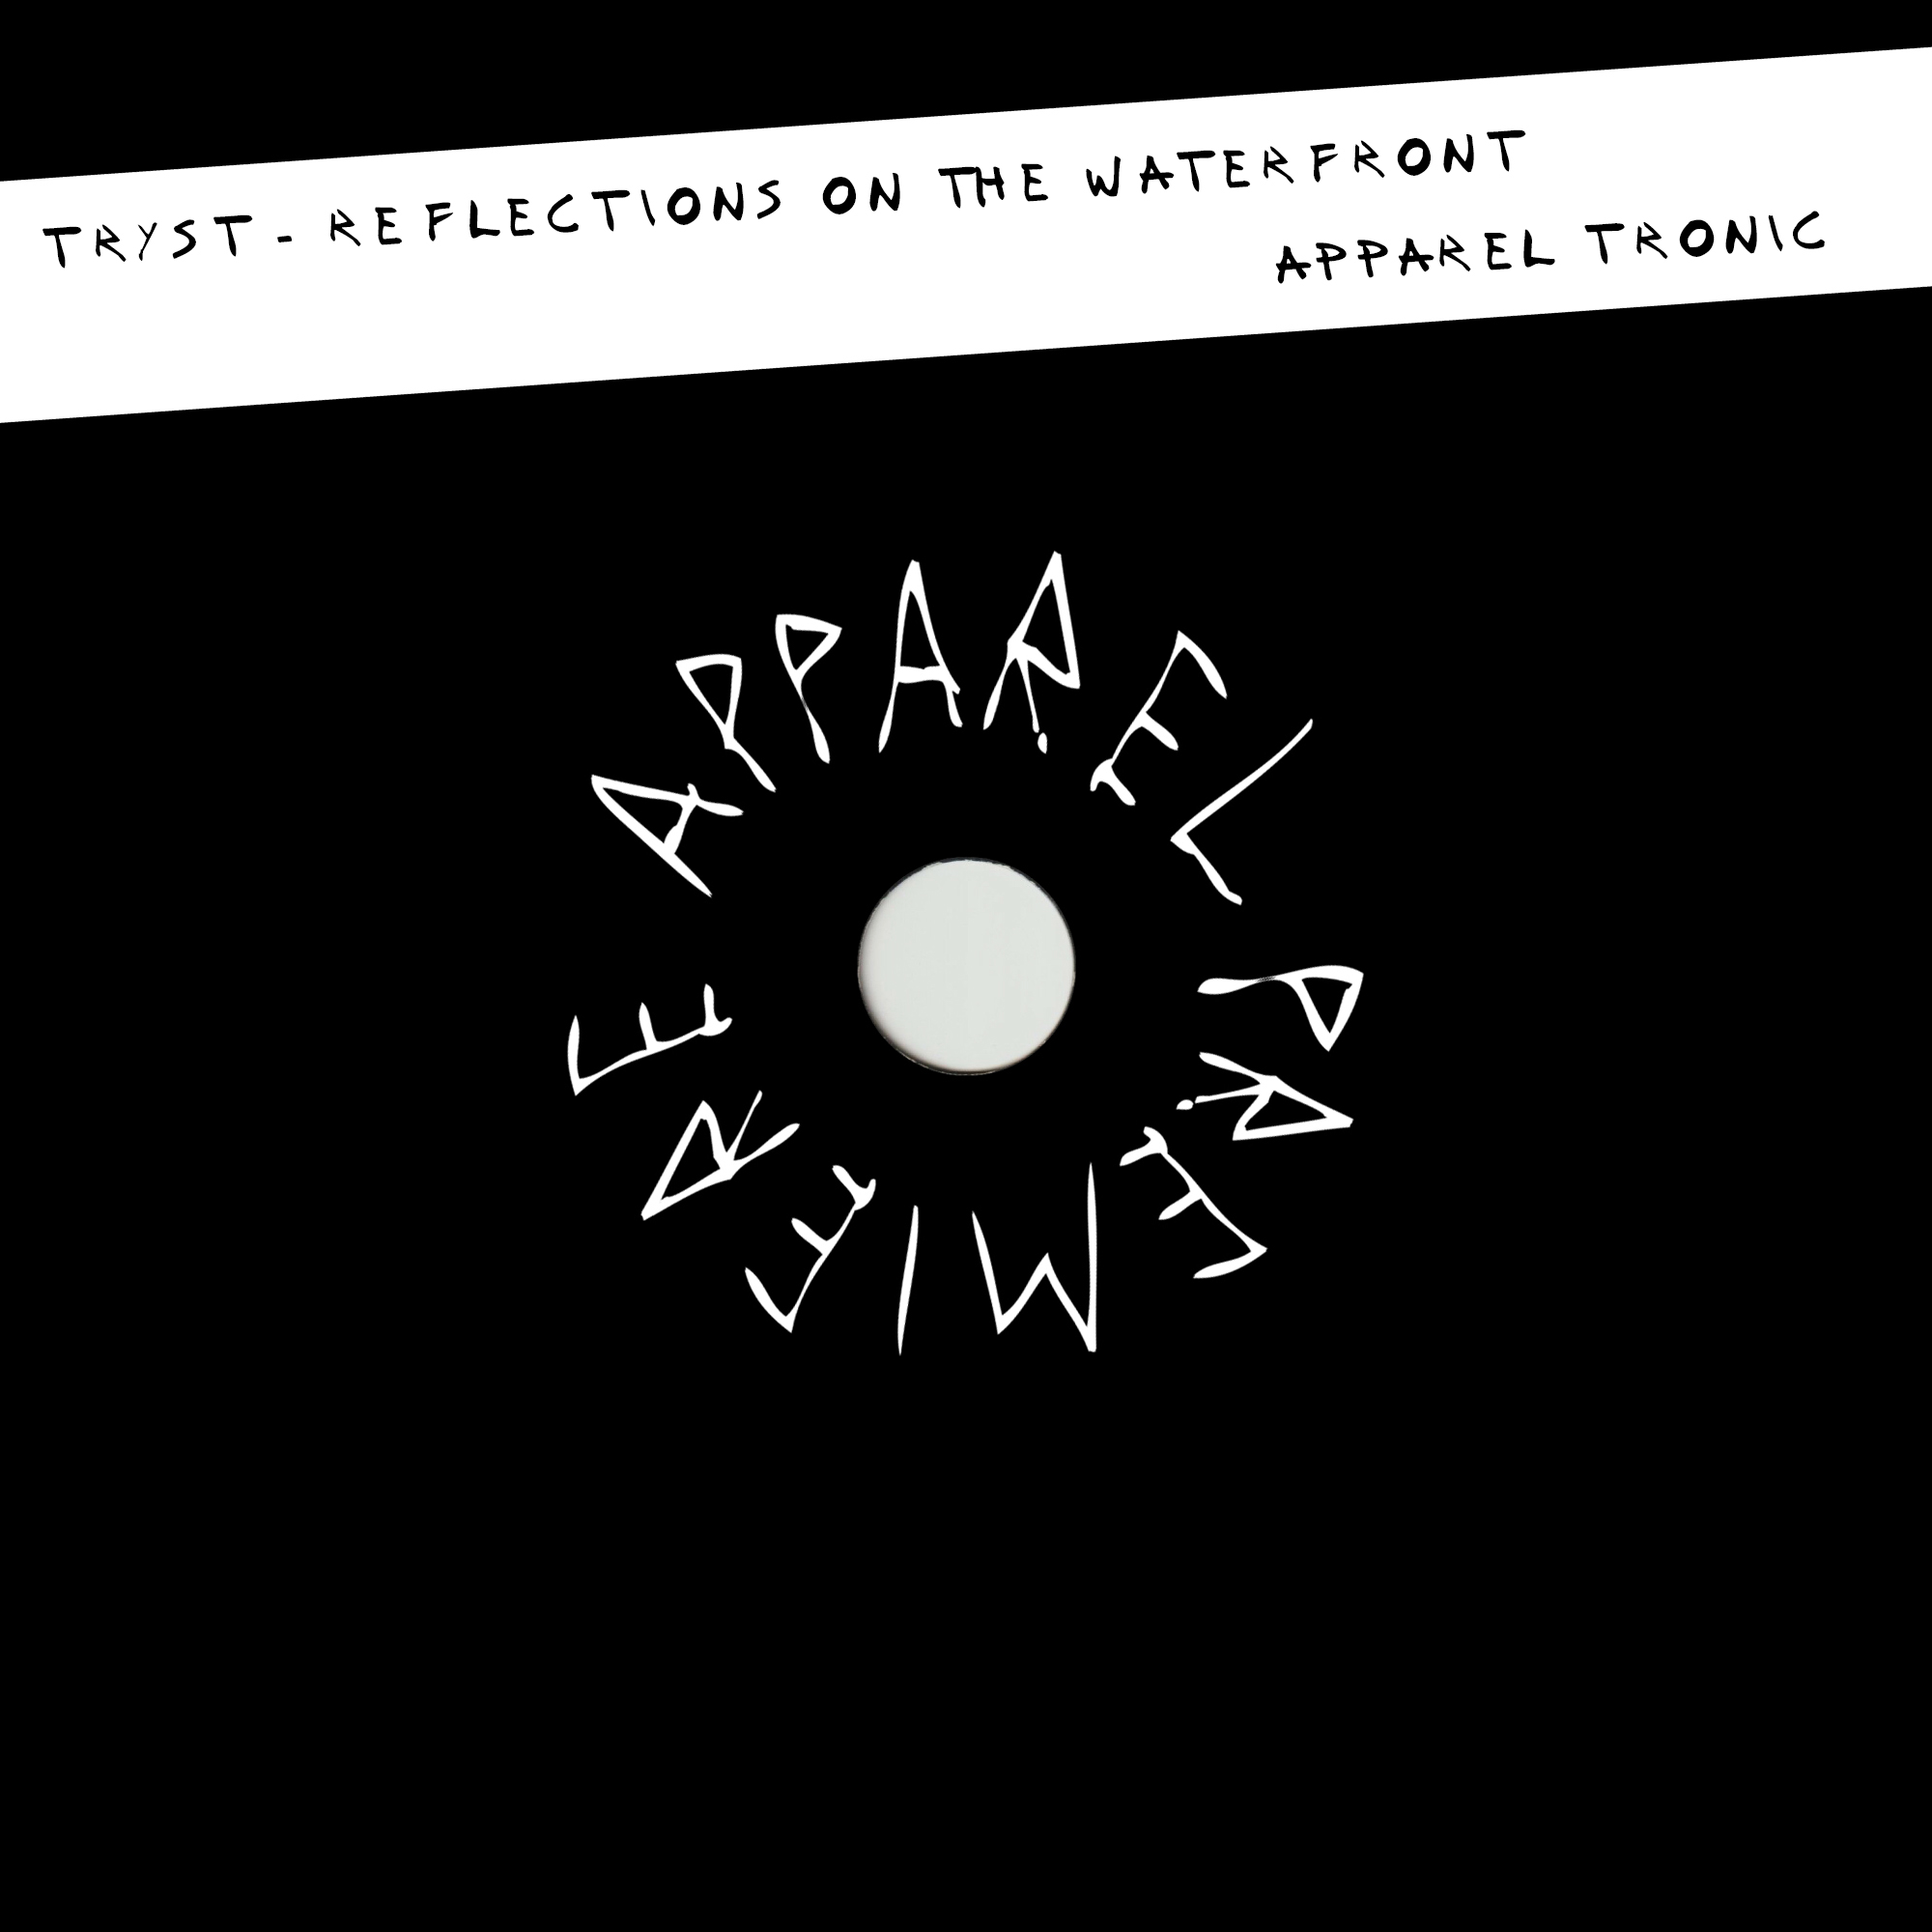 APPAREL PREMIERE Tryst – Reflections On The Waterfront [Apparel Tronic]